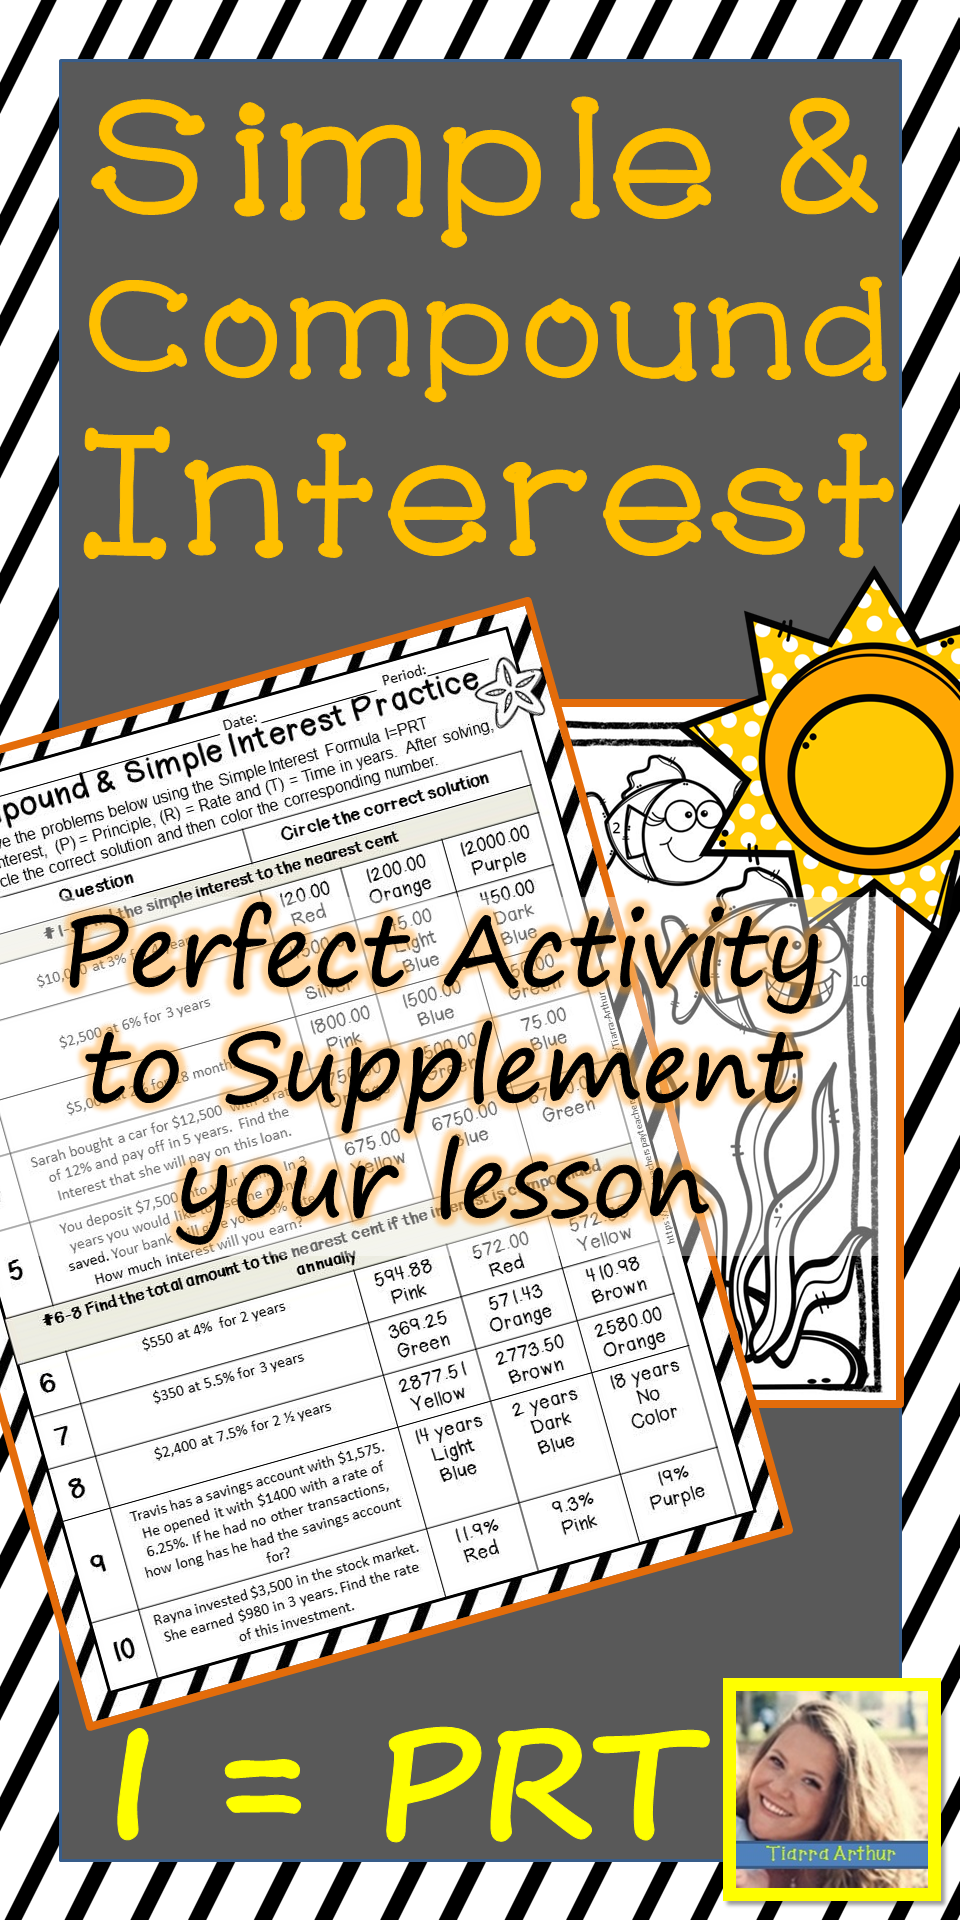 This Simple And Compound Interest Activity For Middle School Math Will Be A Fun Game To Play For 7th Grade S Teaching Blogs Teaching Techniques Simple Interest